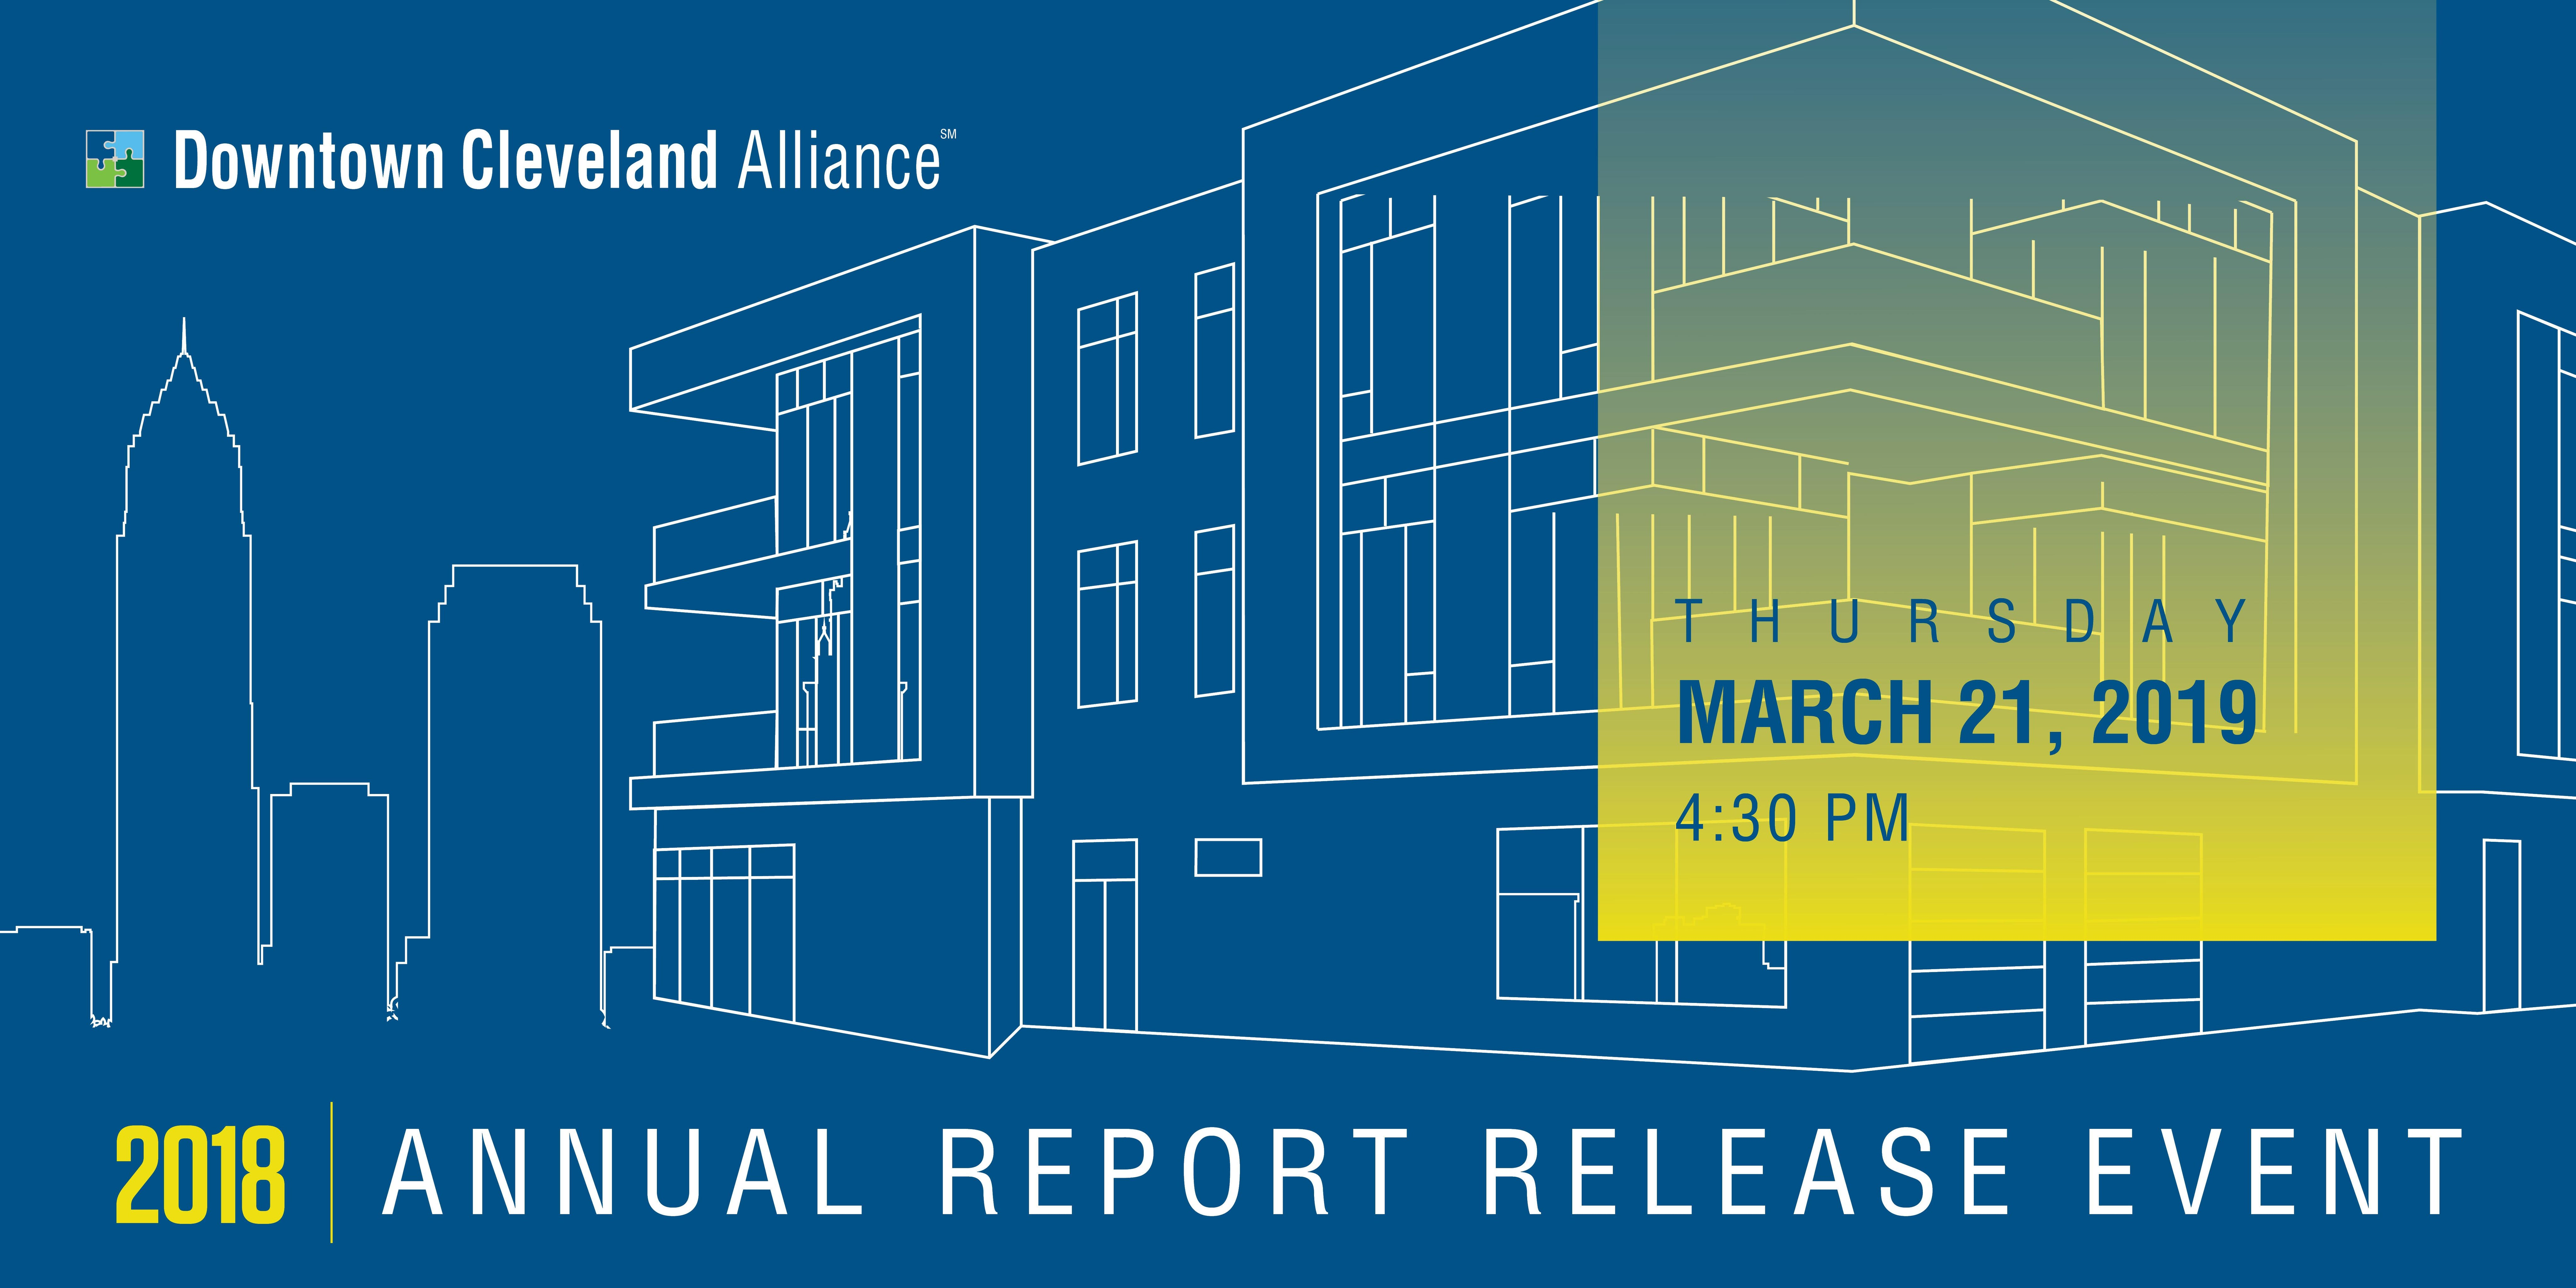 Downtown Cleveland Alliance Annual Report Rel